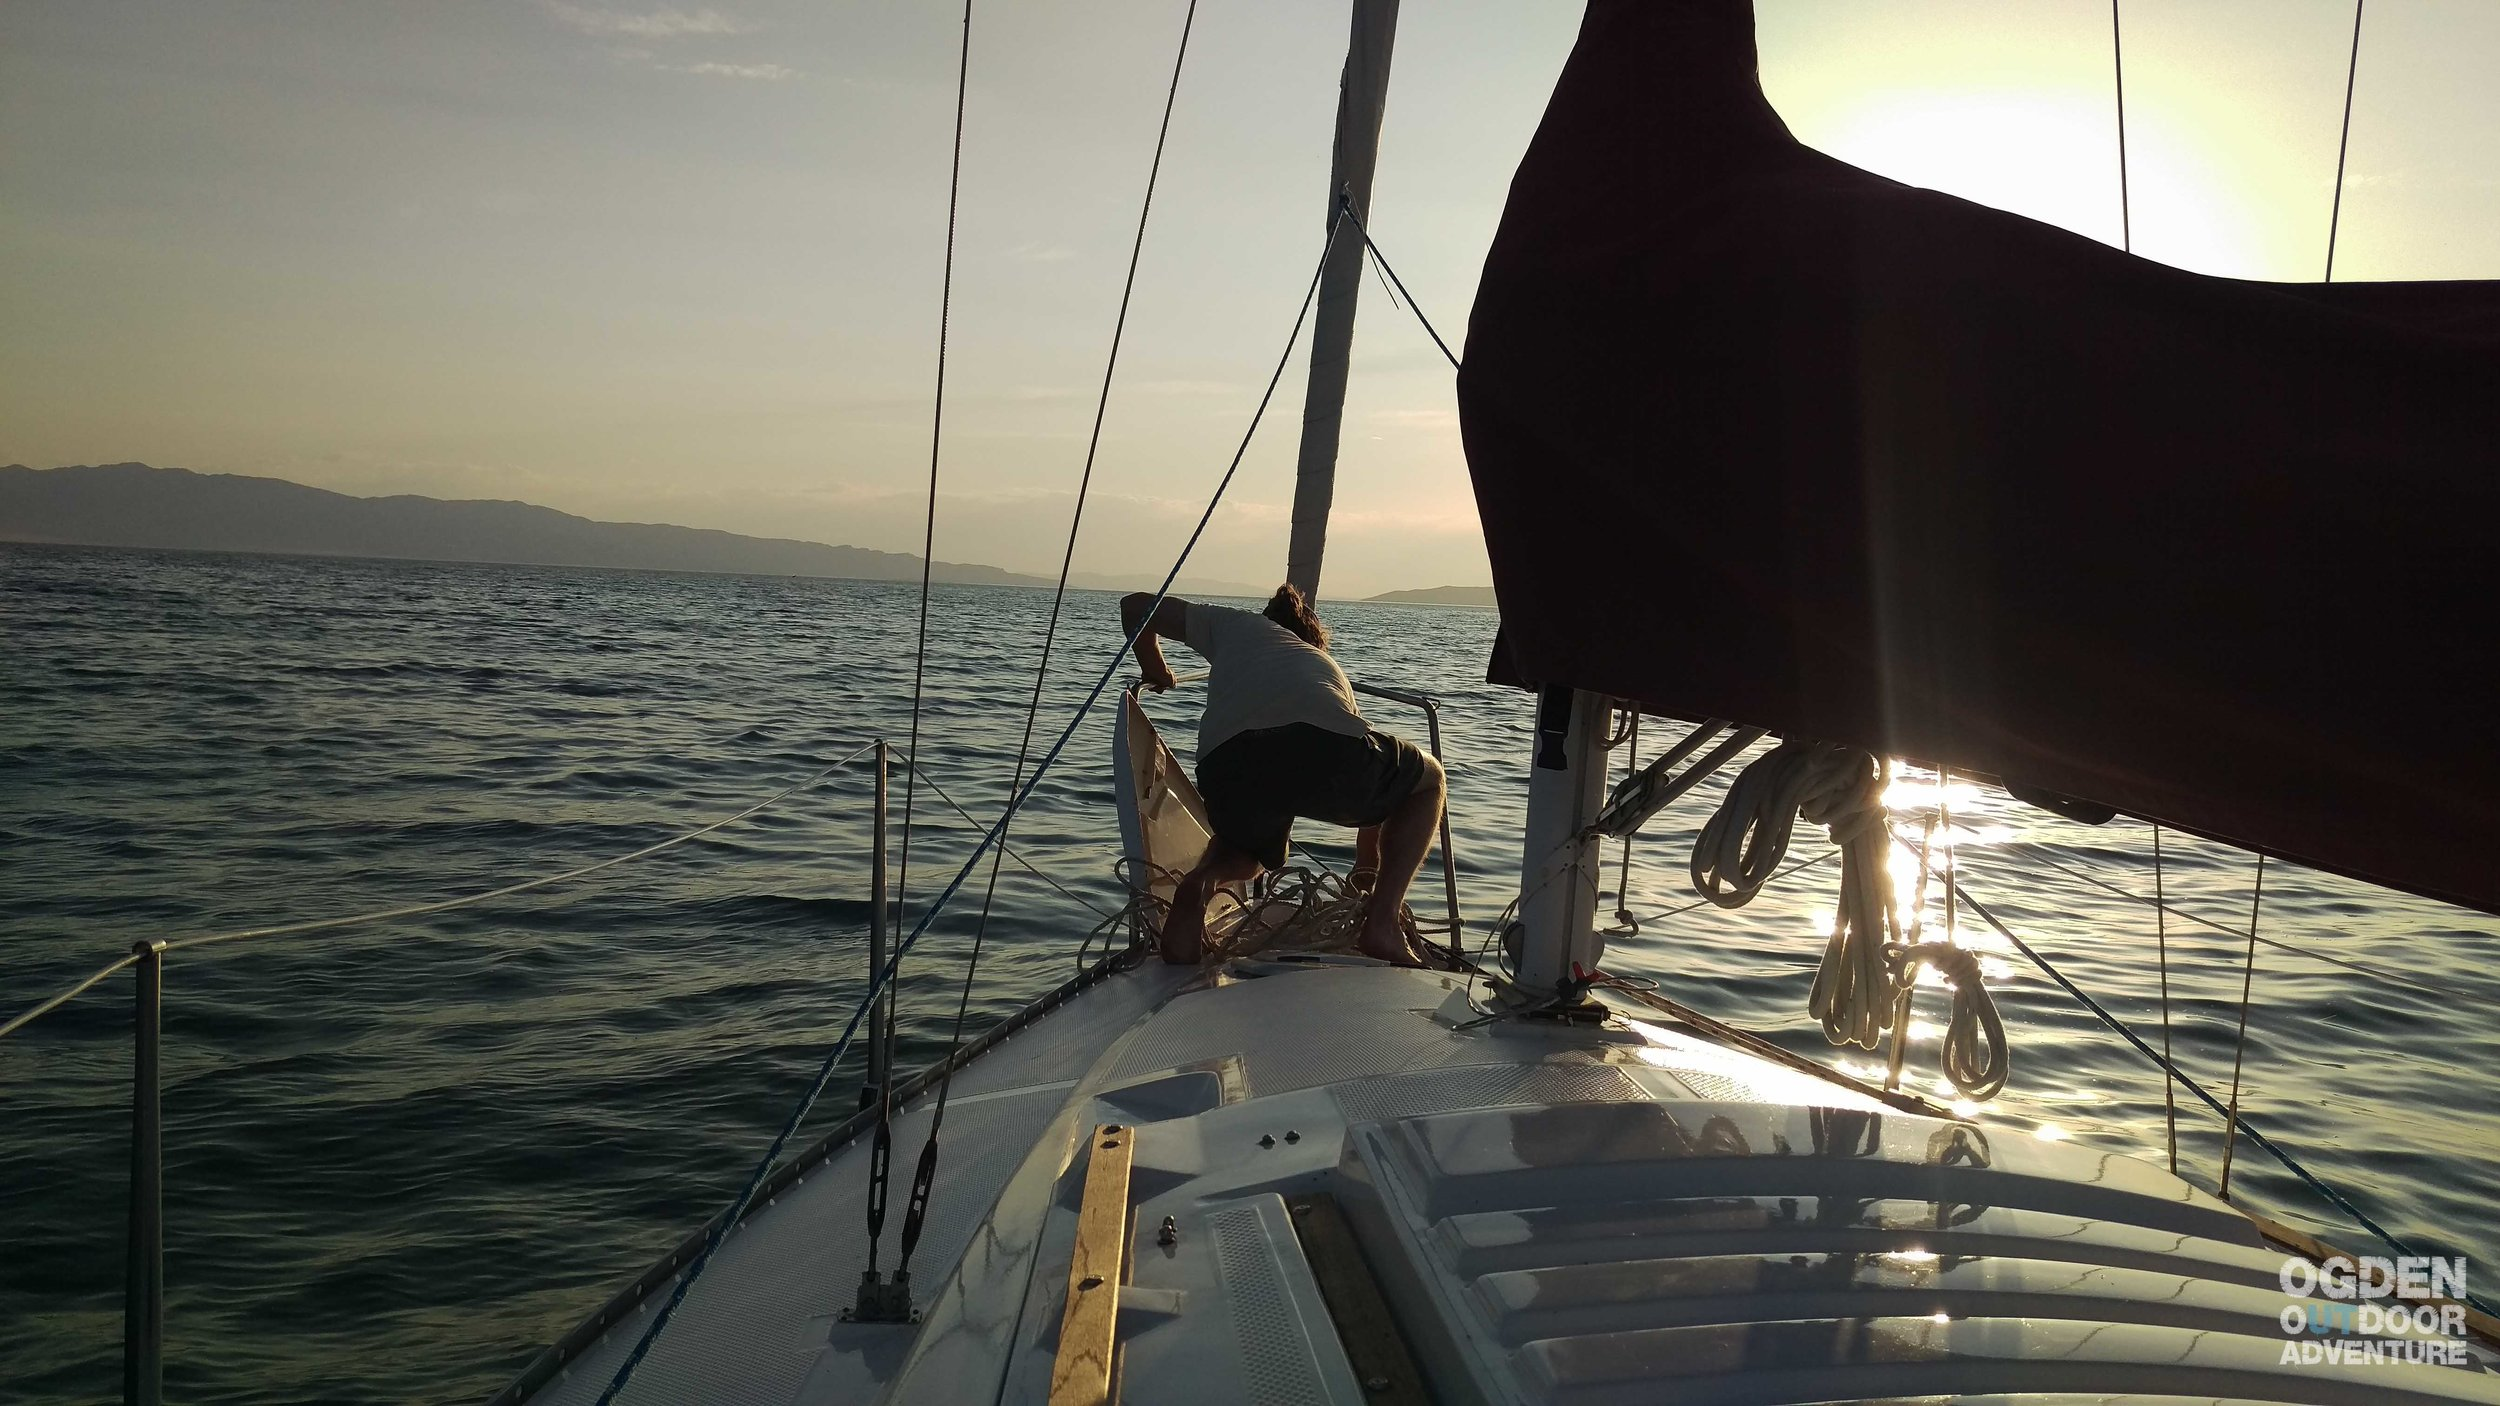 Chase dropping anchor on the Great Salt Lake.